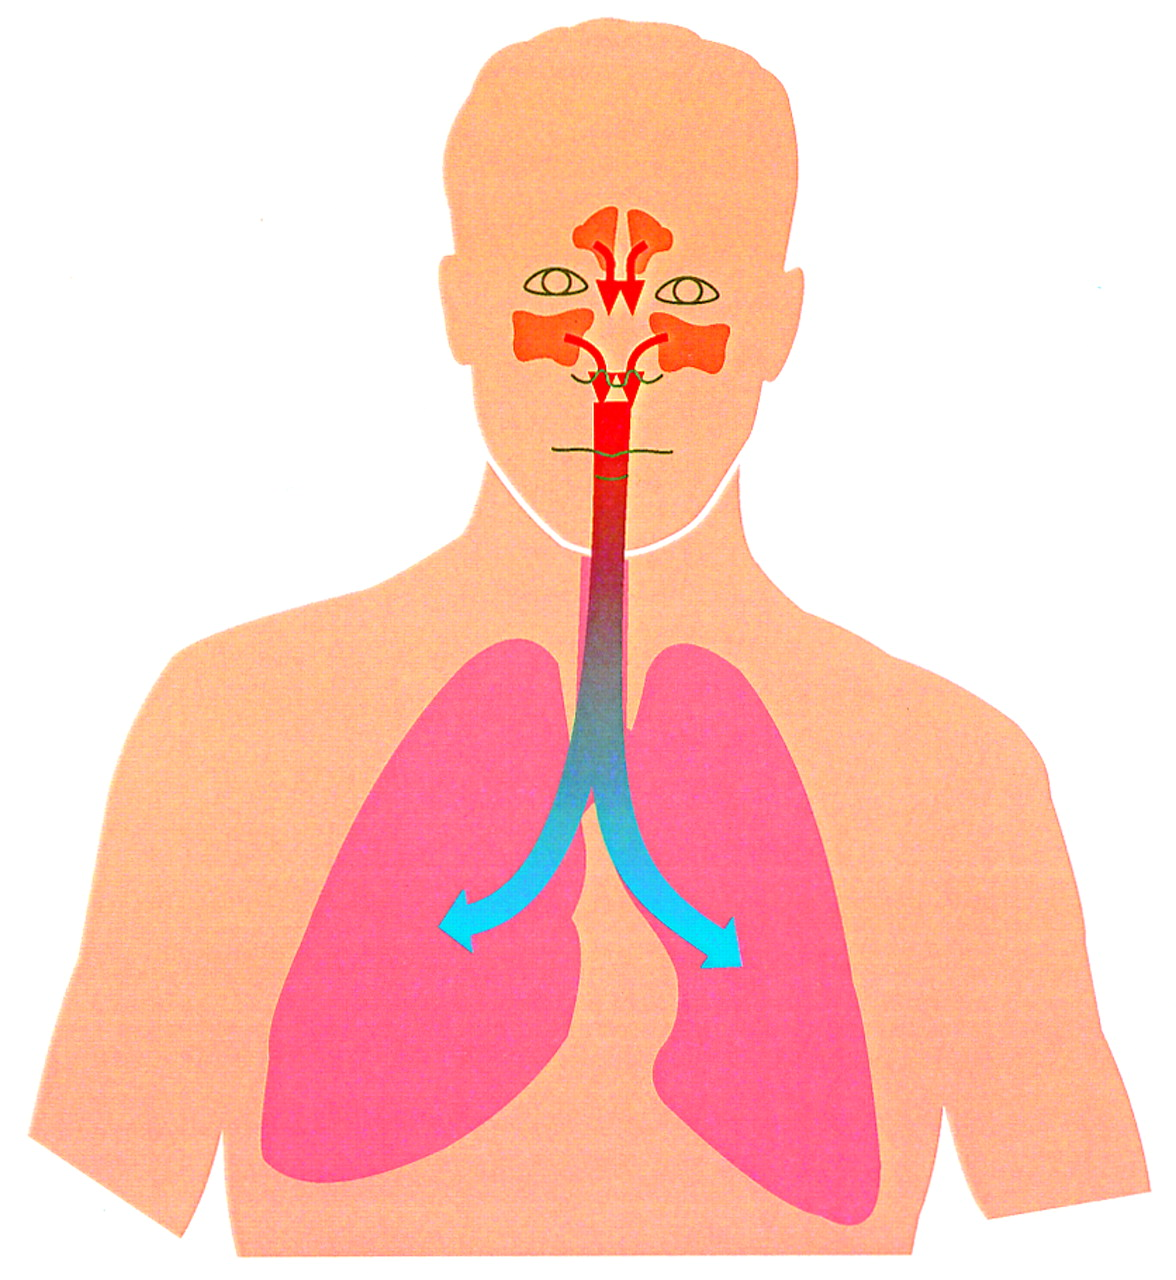 Nasal nitric oxide in man | Thorax